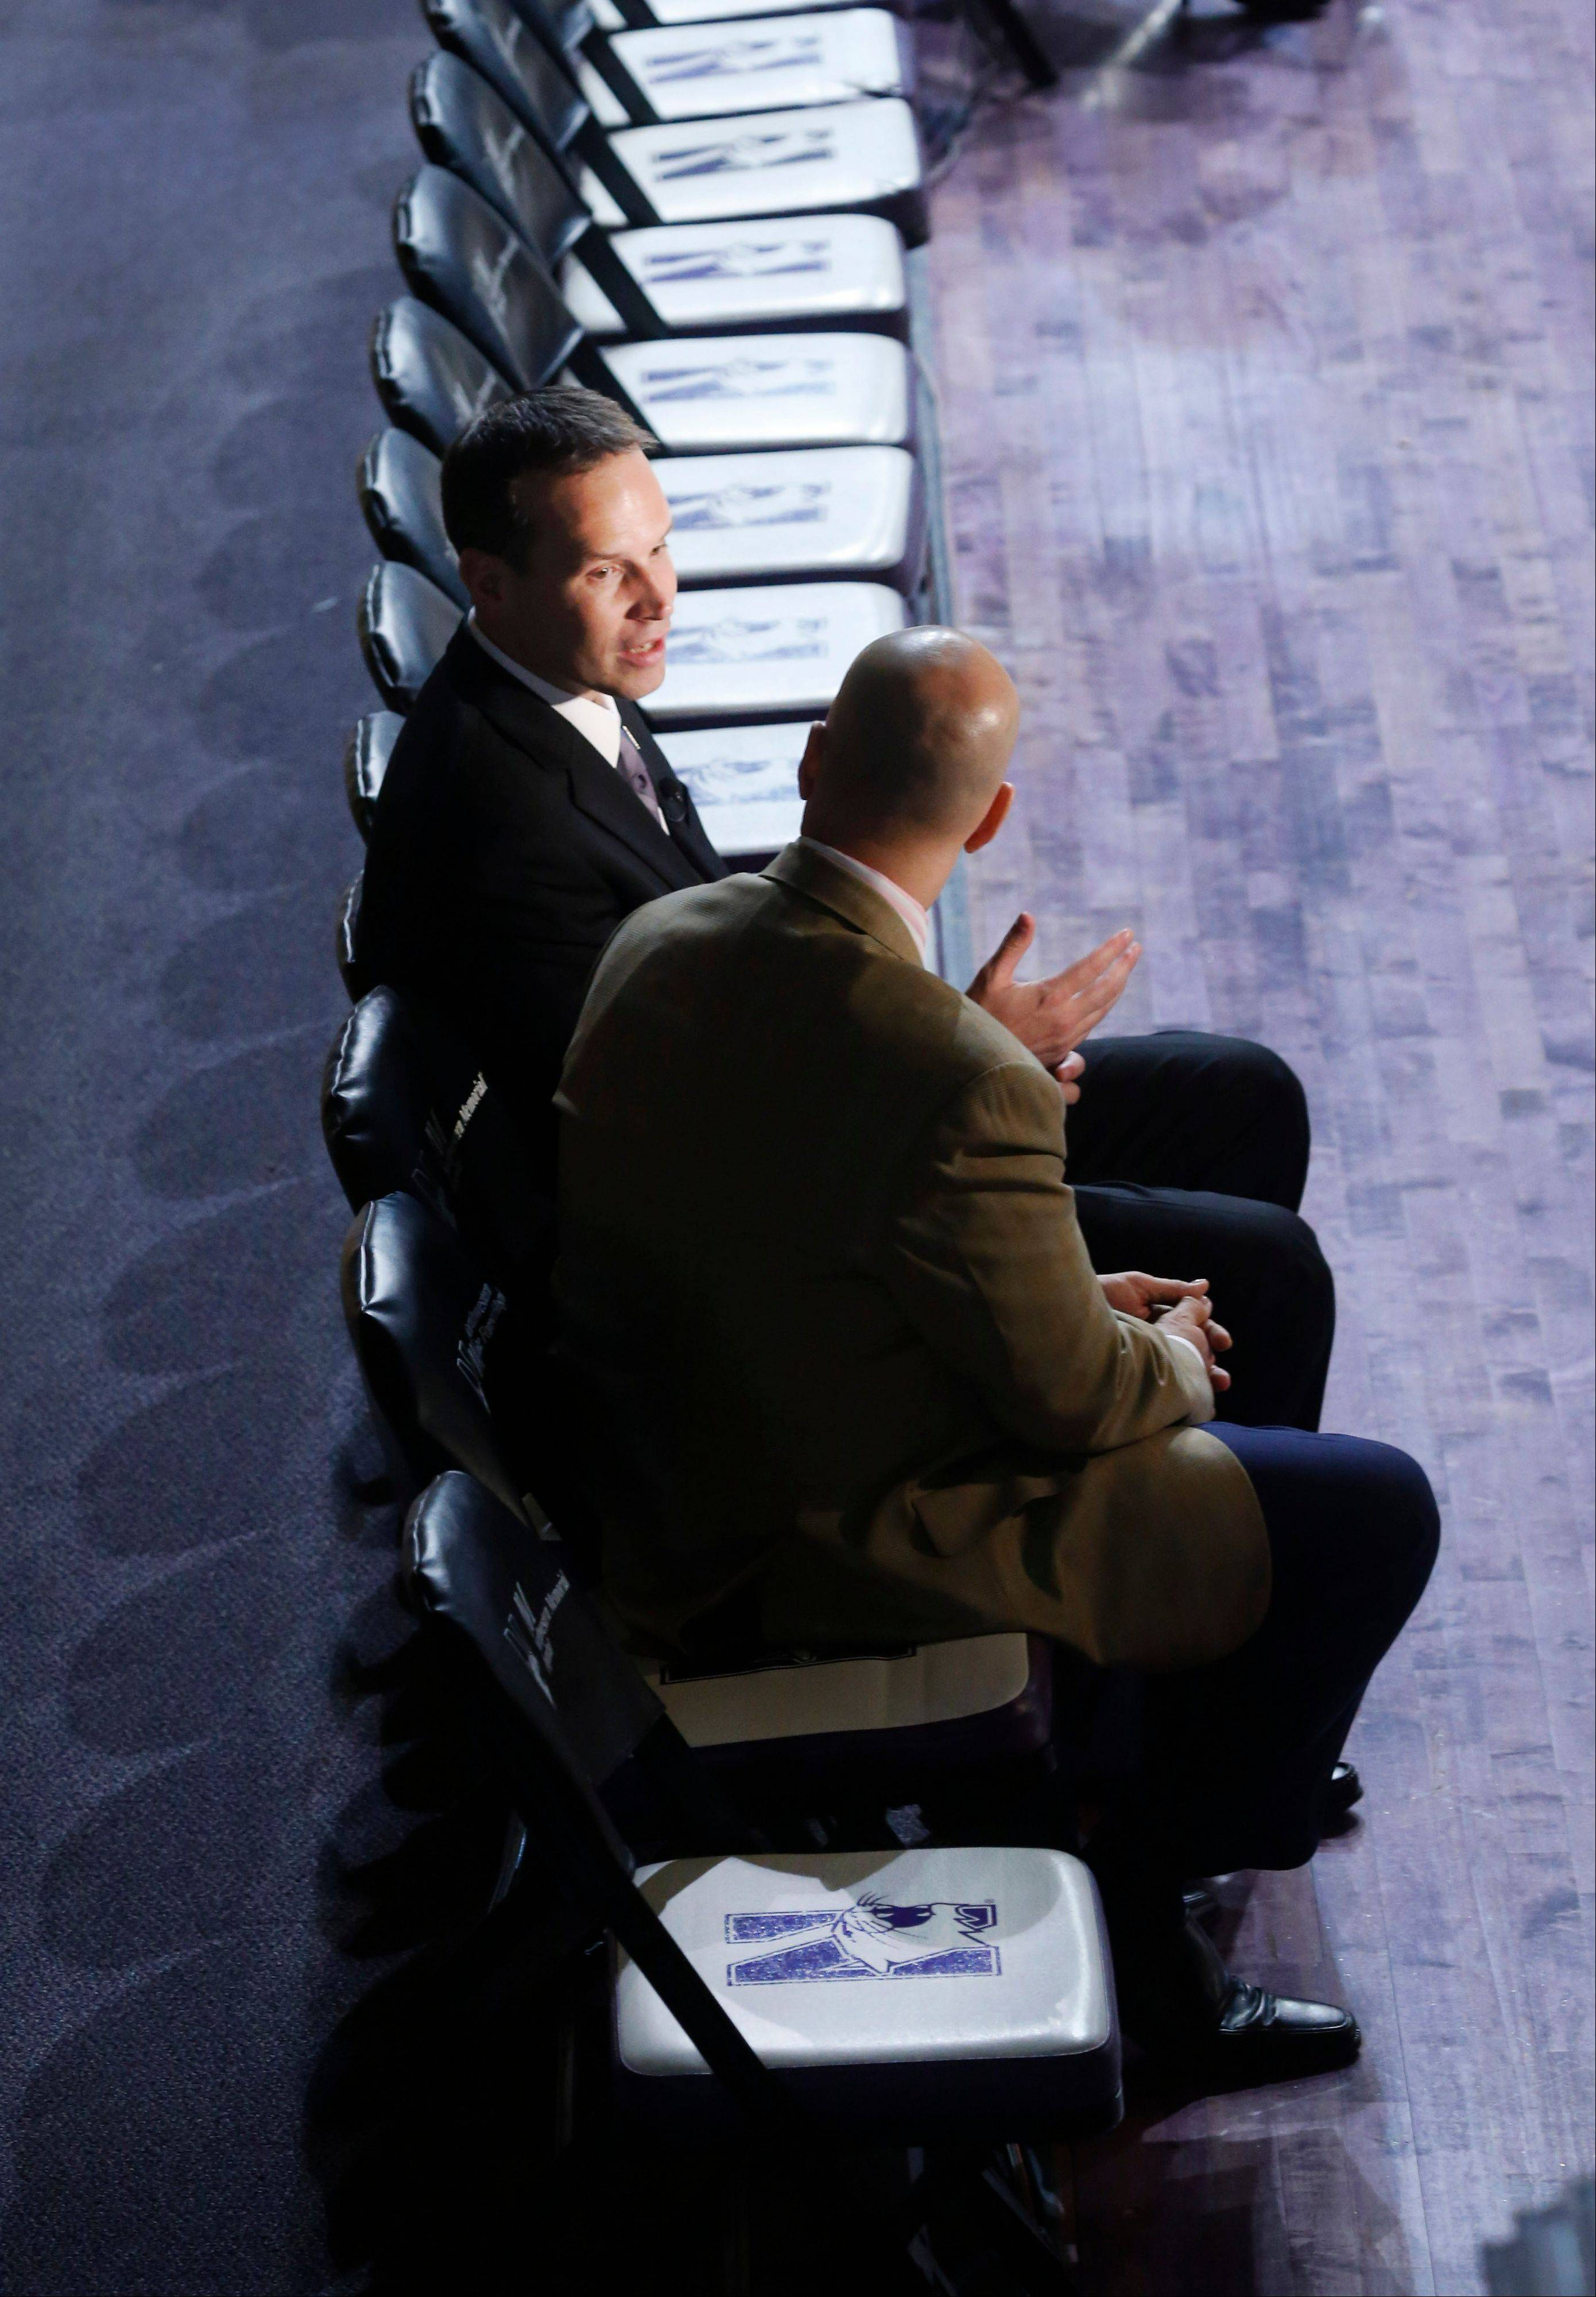 Chris Collins, top, gives a television interview on the Northwestern University bench after he was named the new men's basketball coach at a news conference, Tuesday, April 2, 2013, in Evanston, Ill. (AP Photo/Charles Rex Arbogast)